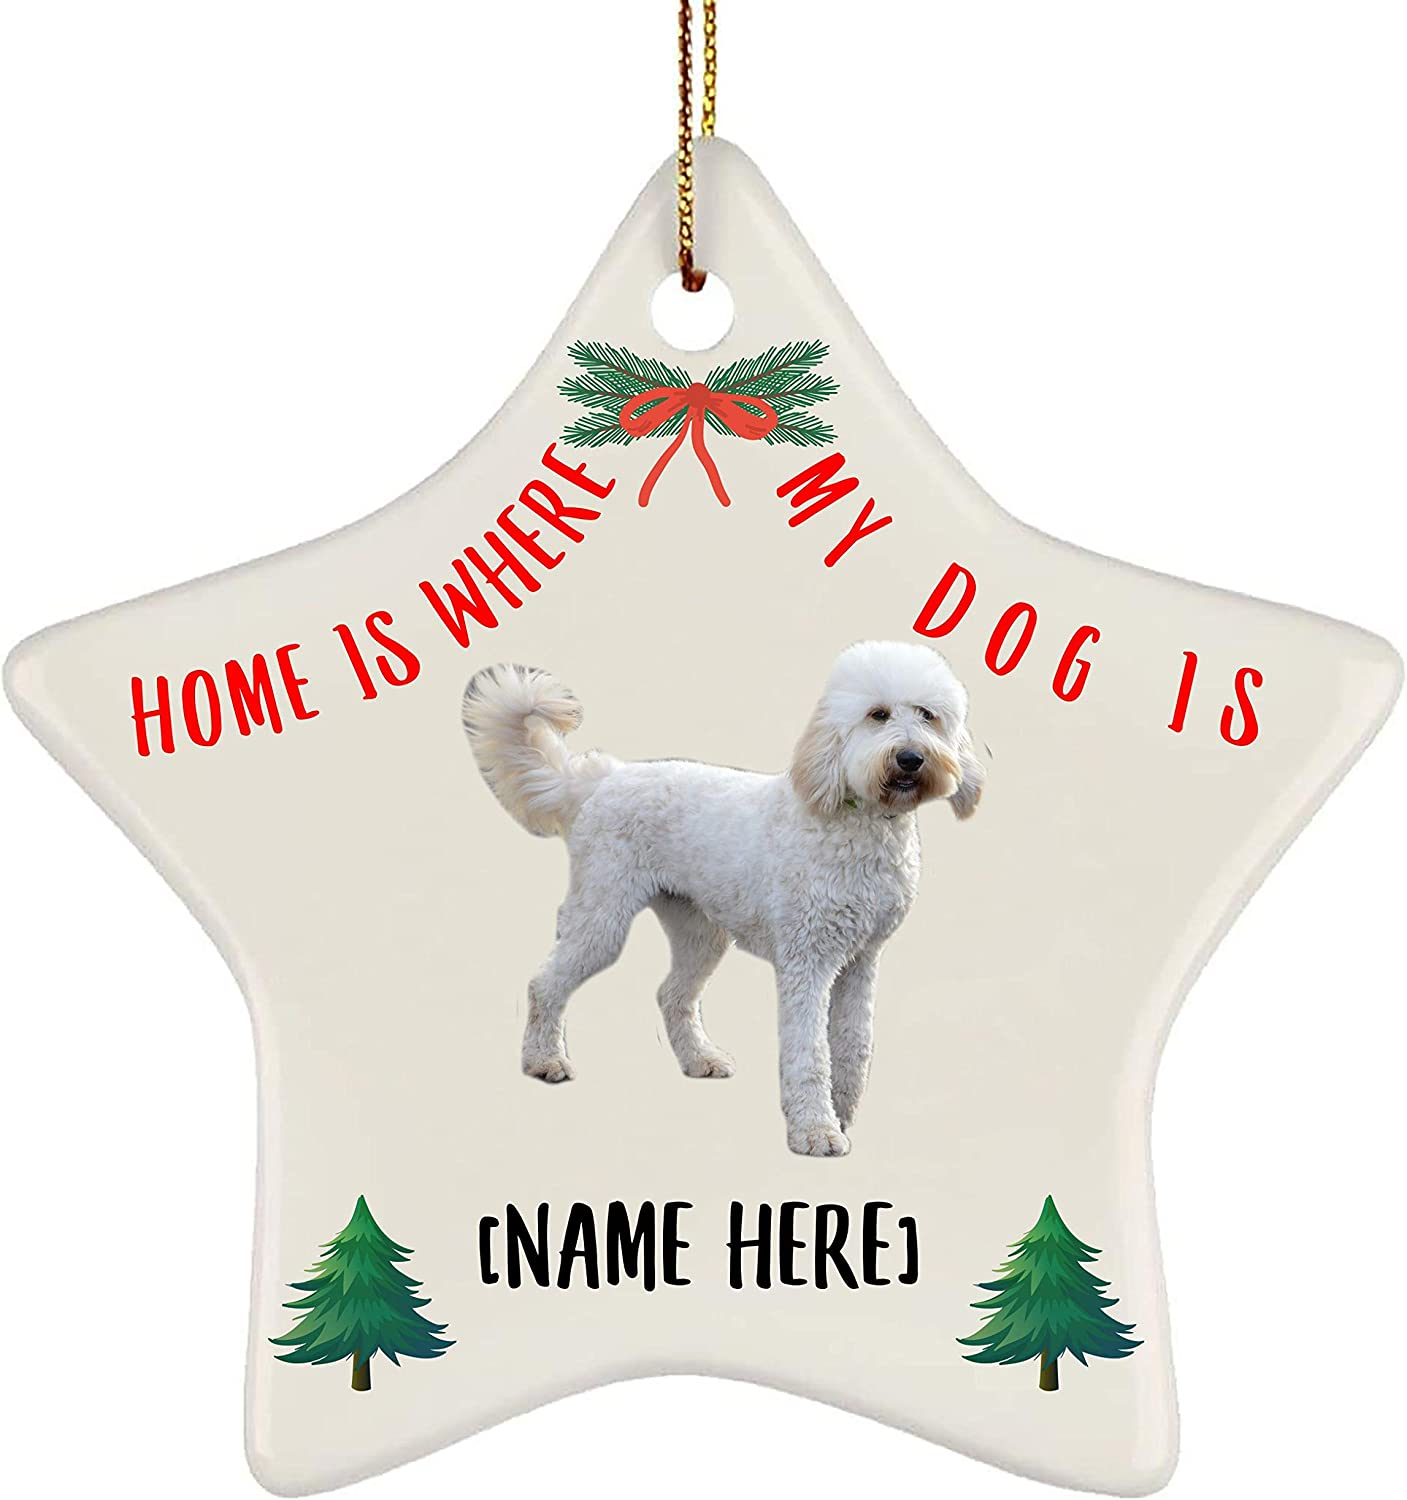 Lovesout Personalized Name Goldendoodle White Home is Where My Dog is Christmas Star Ornament